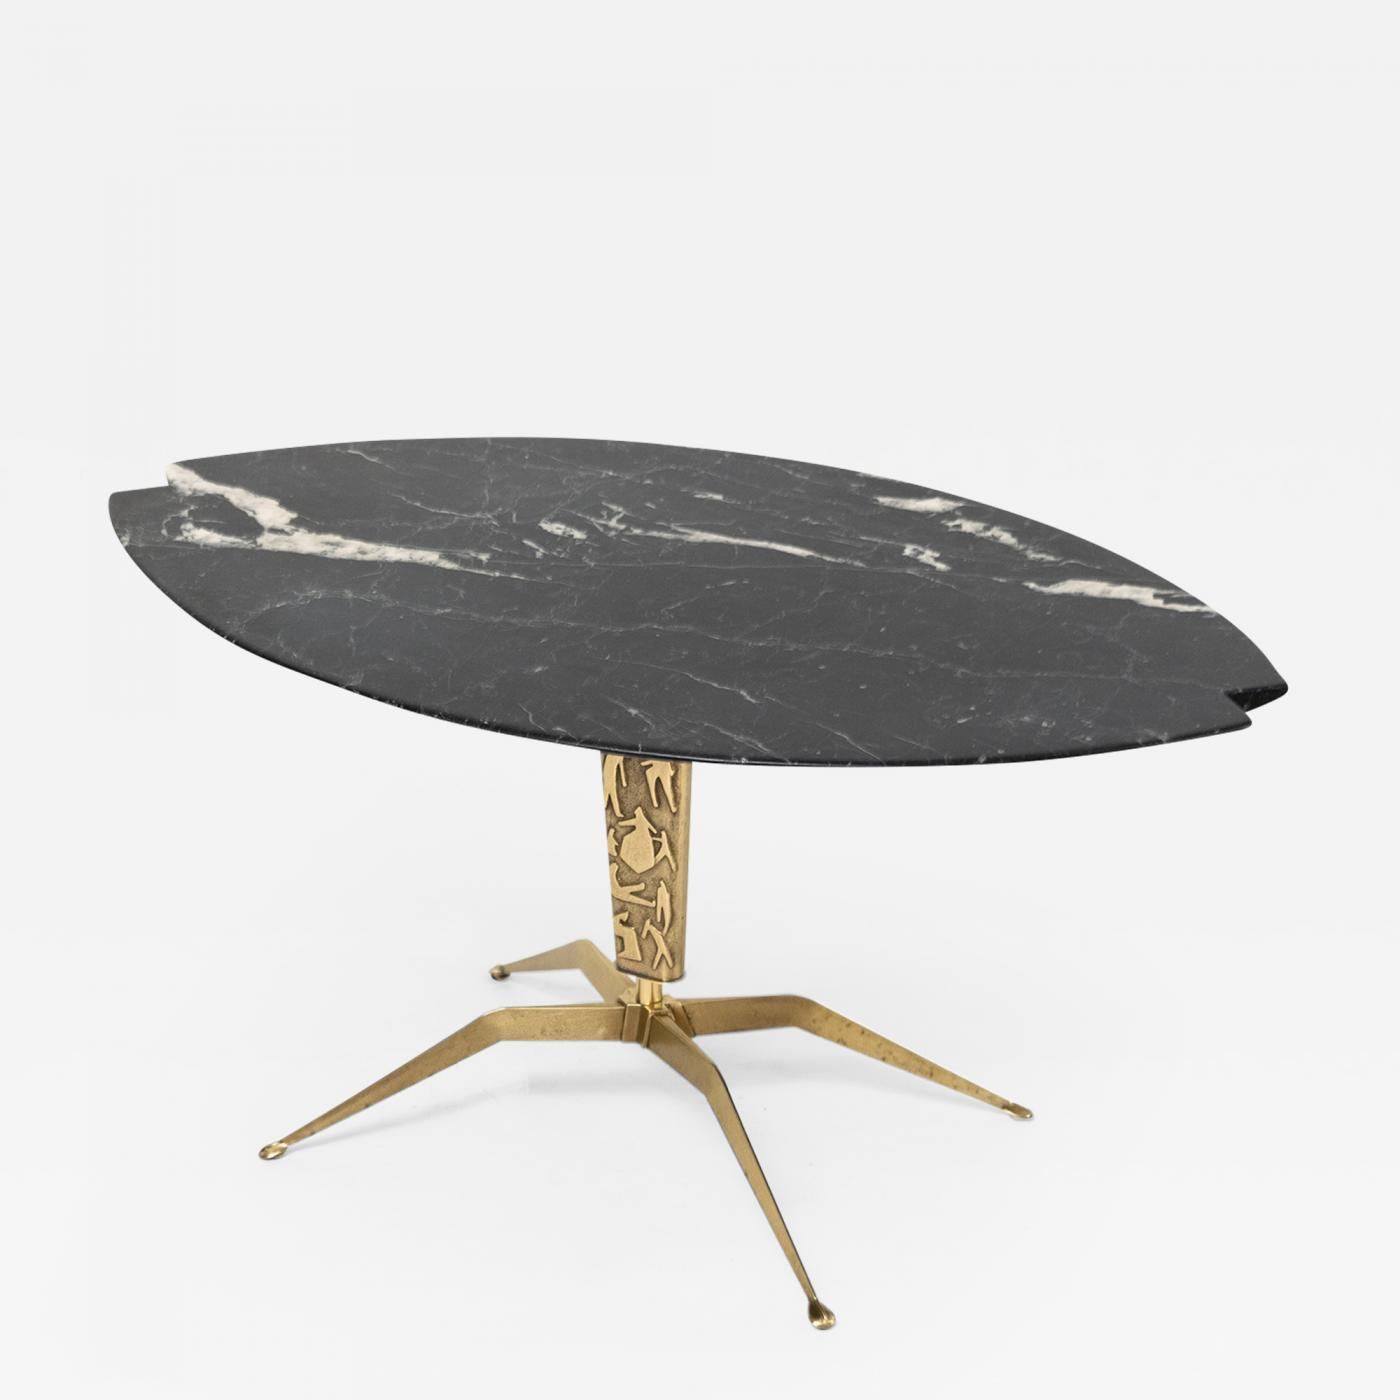 Image of: Italian Mid Century Coffee Table With Notched Black Marble Top